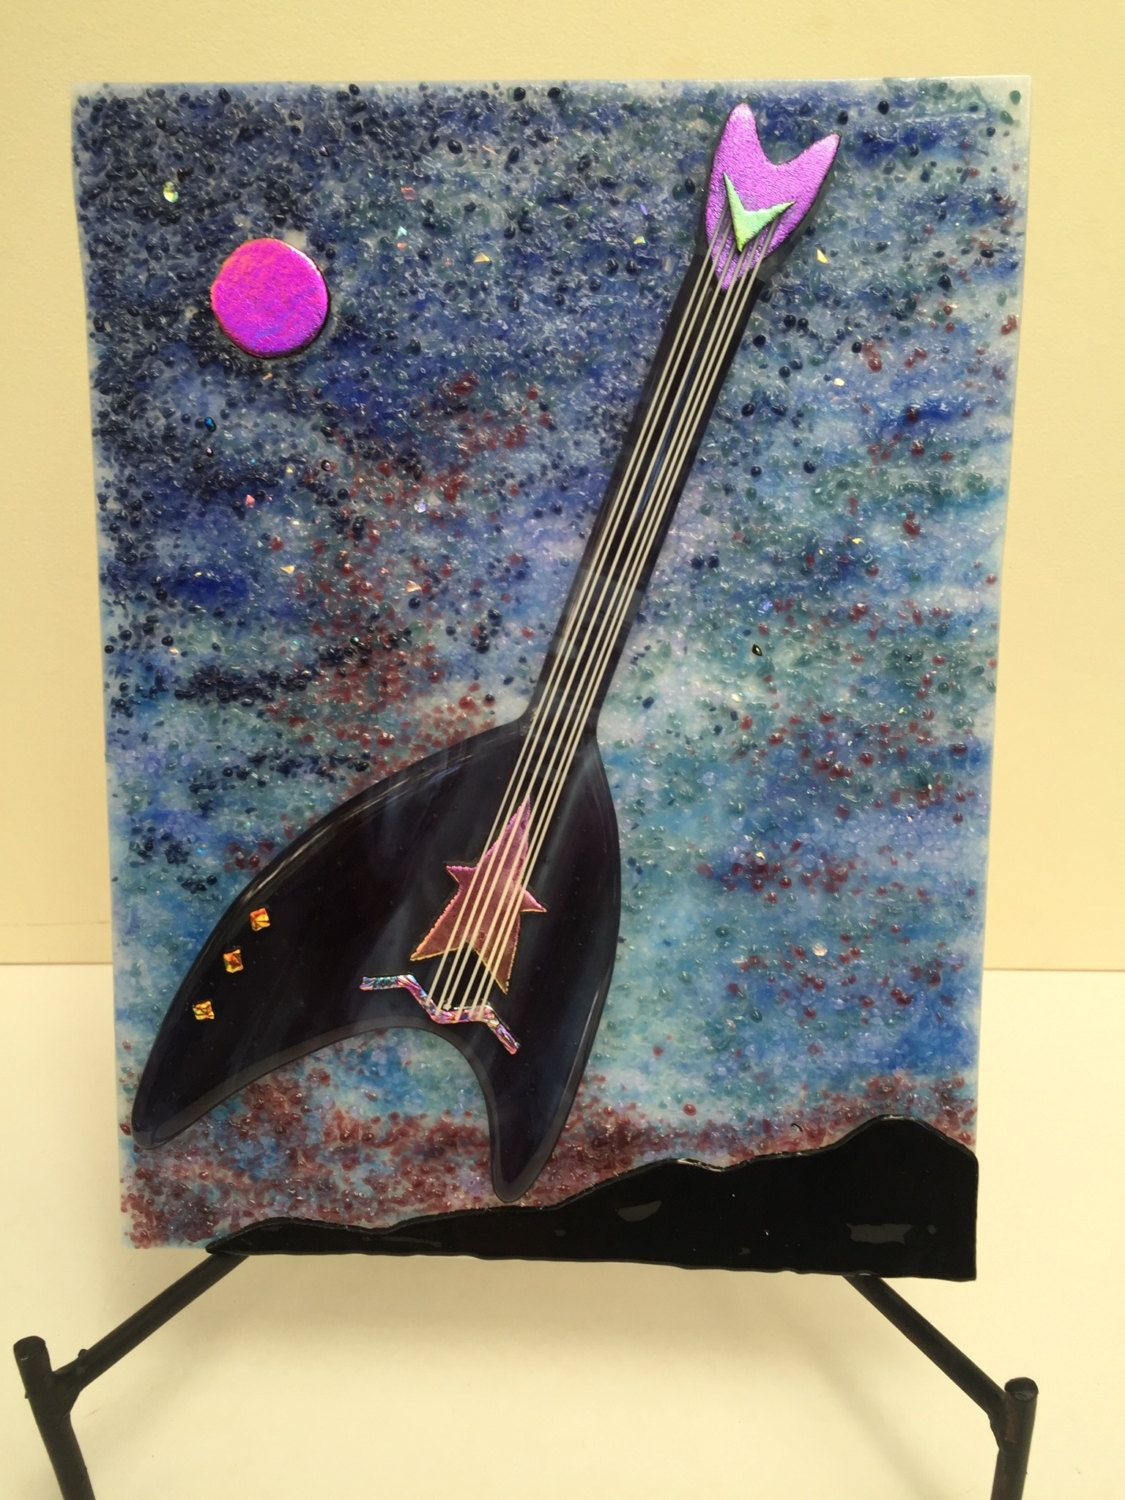 Star Trek Guitar on Night sky background, fused glass by GalleryGlassWorks on Etsy